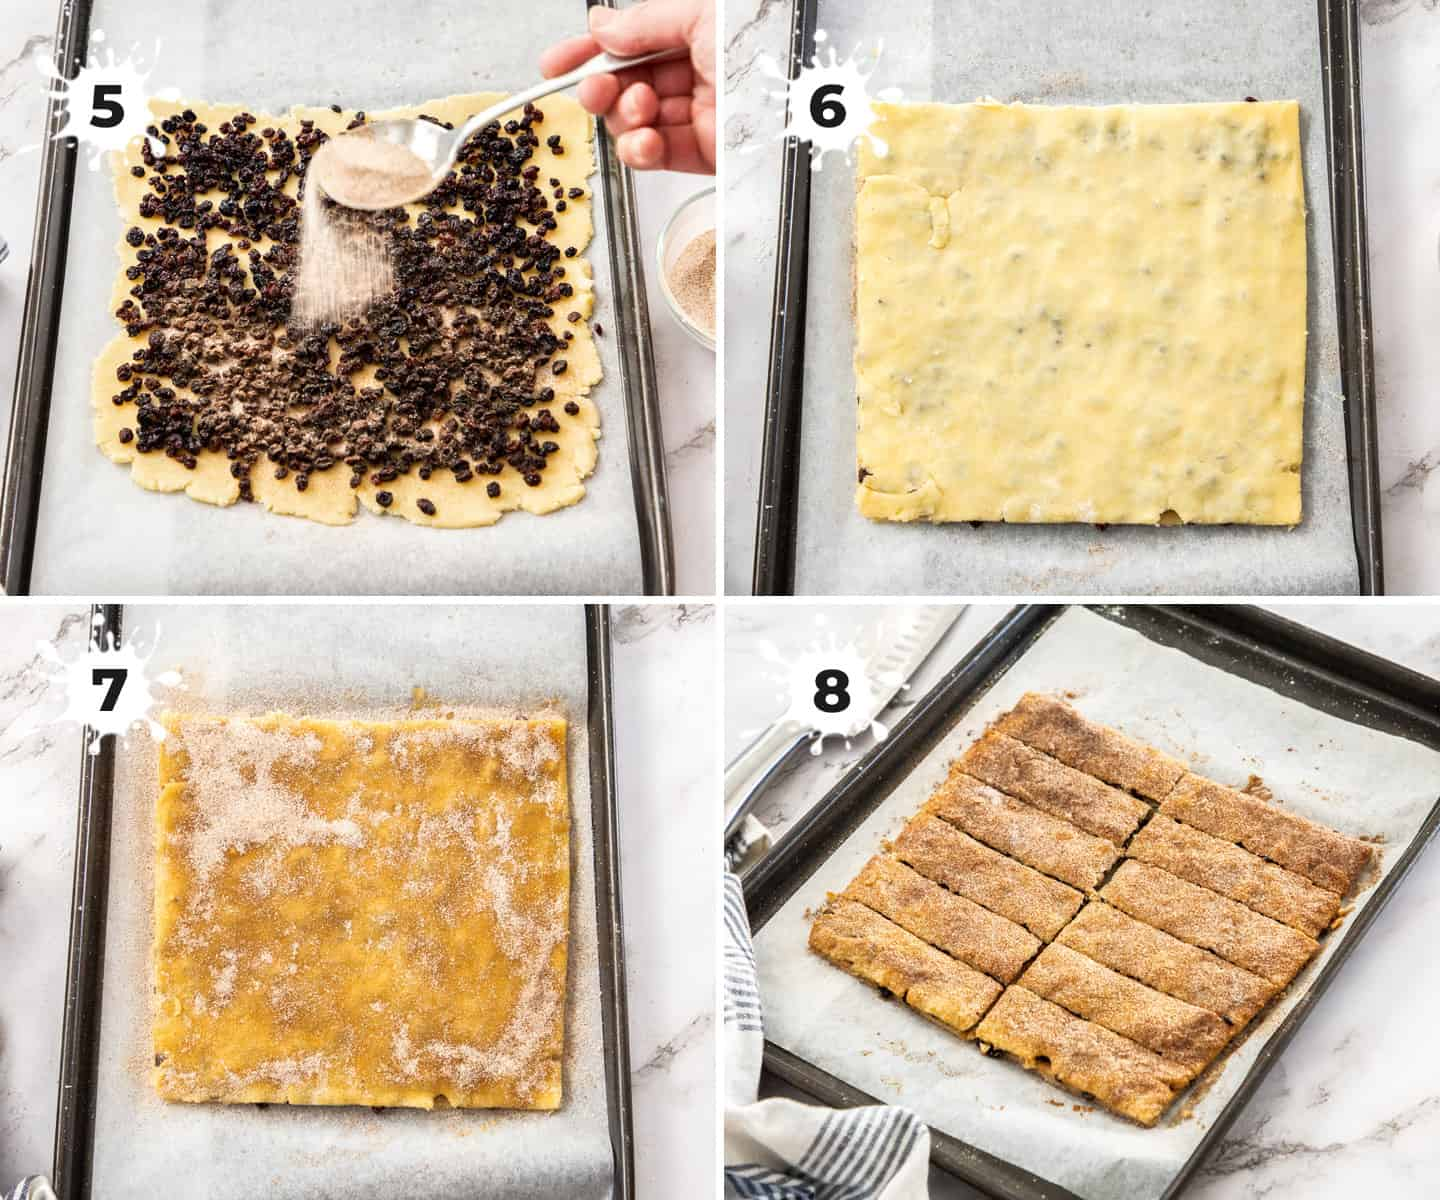 A 4 image collage showing steps of assembling ingredients for garibaldi biscuits.